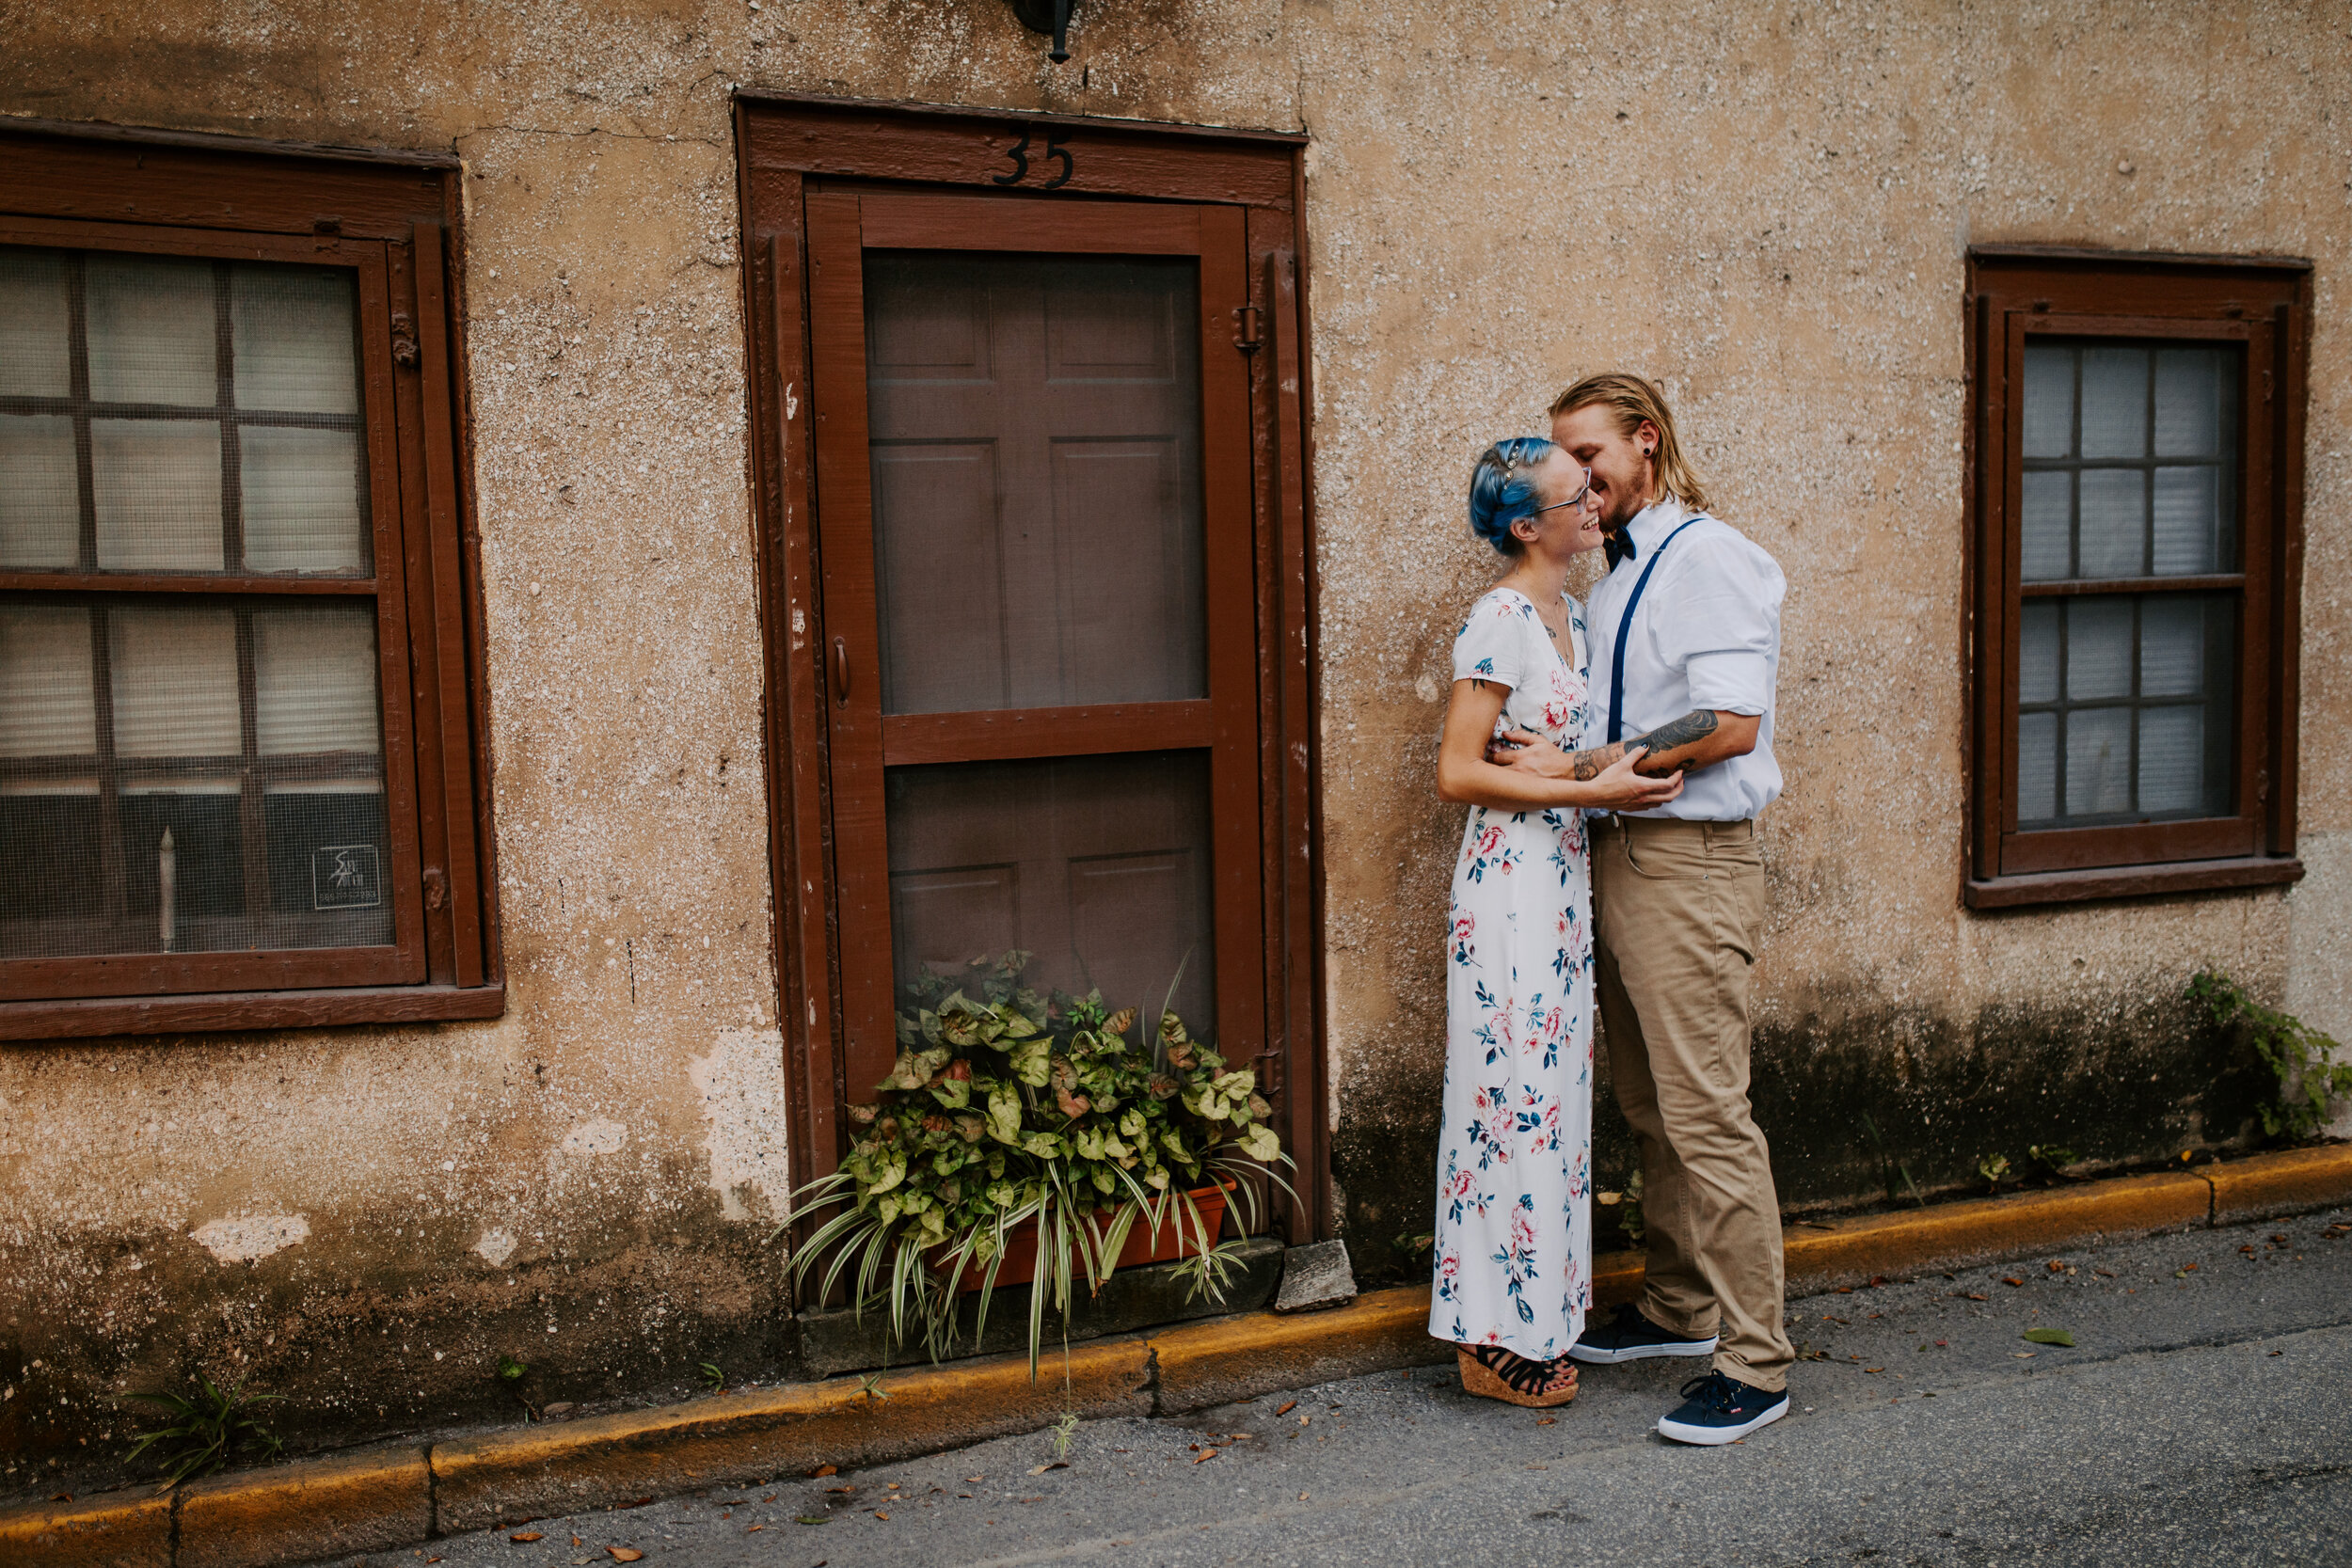 Ashalei_+_Clay_-_Native_Expressions_-_Downtown_St_Augustine_-_Engagement_Session-45.jpg